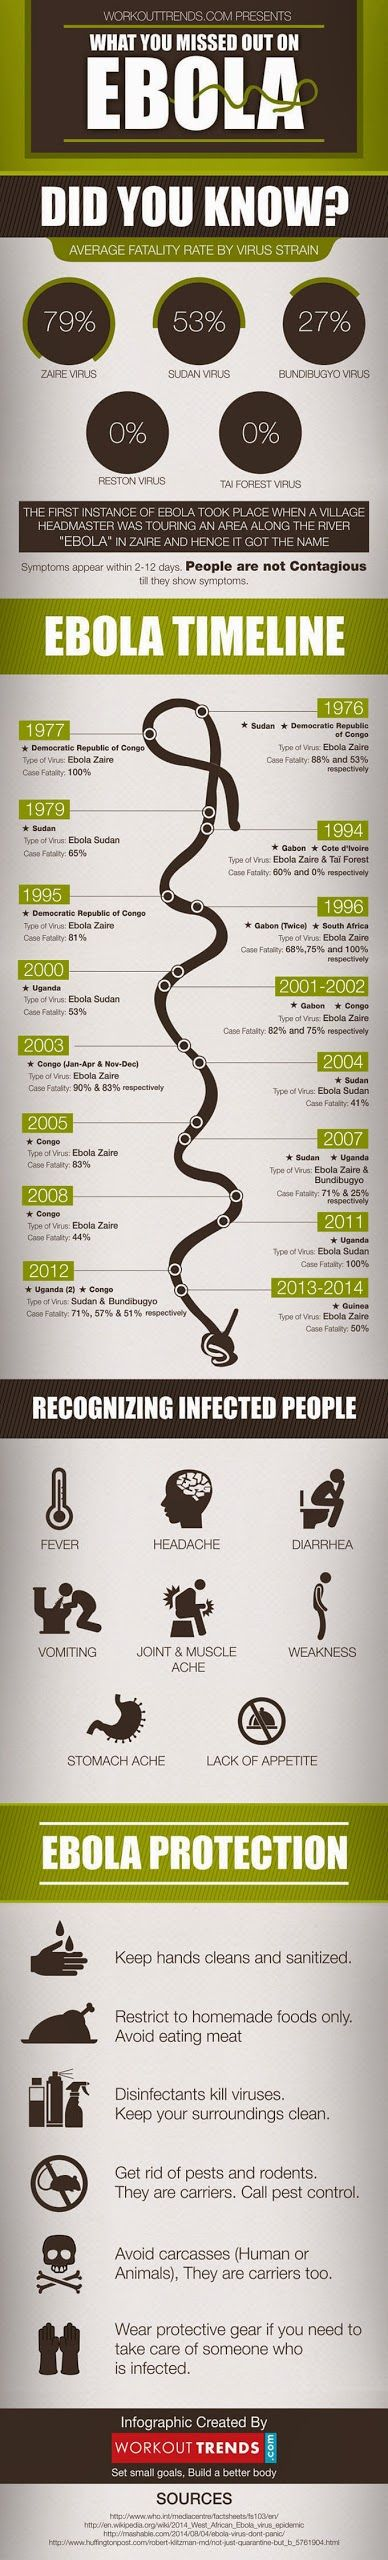 What You Missed Out On The Ebola Virus